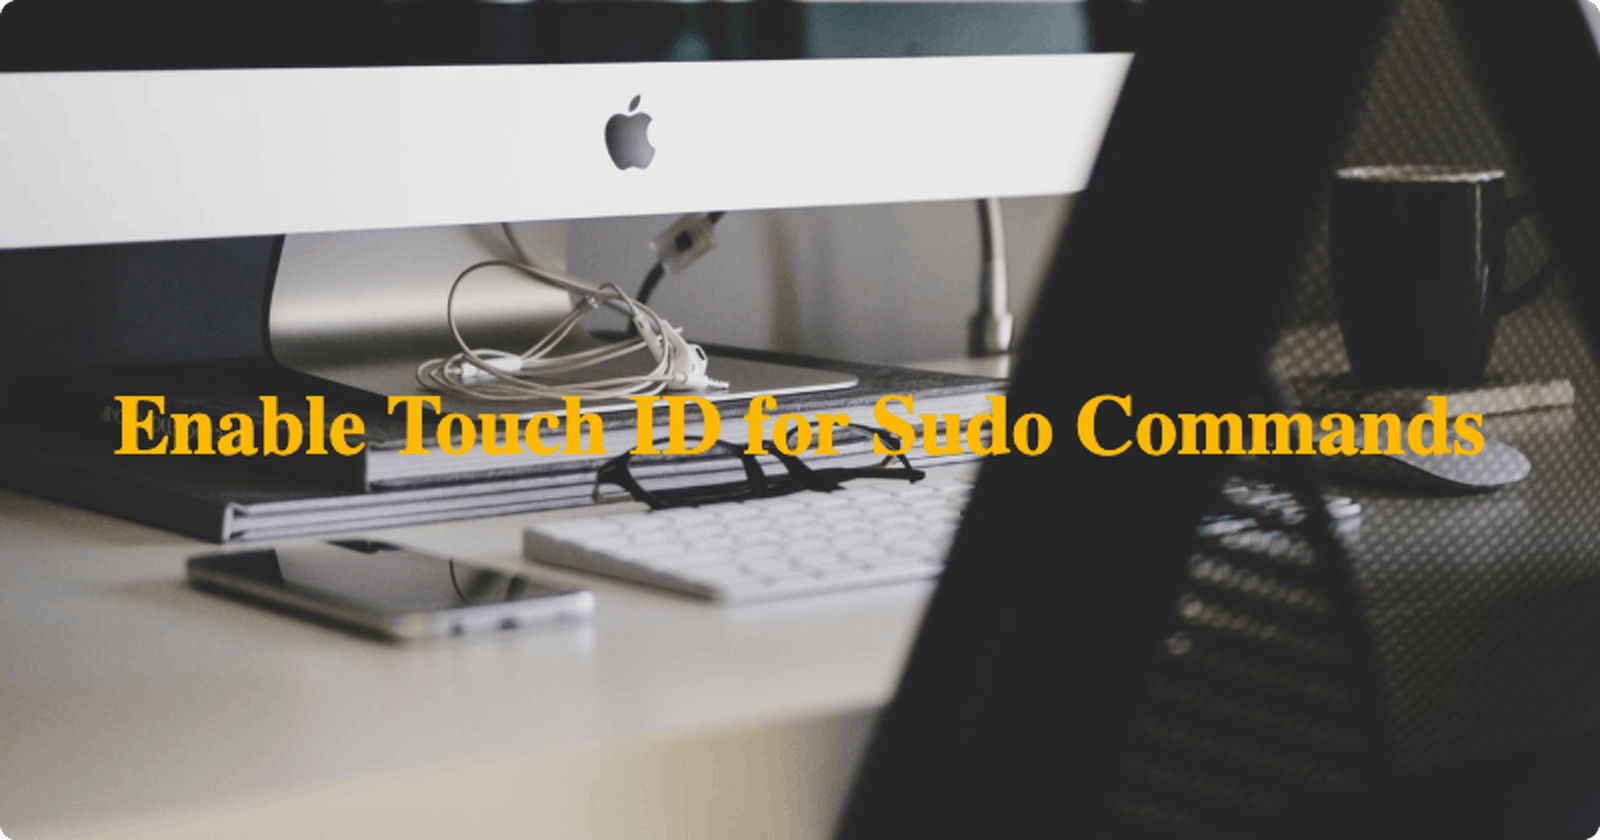 How to allow Touch ID to authenticate for Sudo commands on Mac